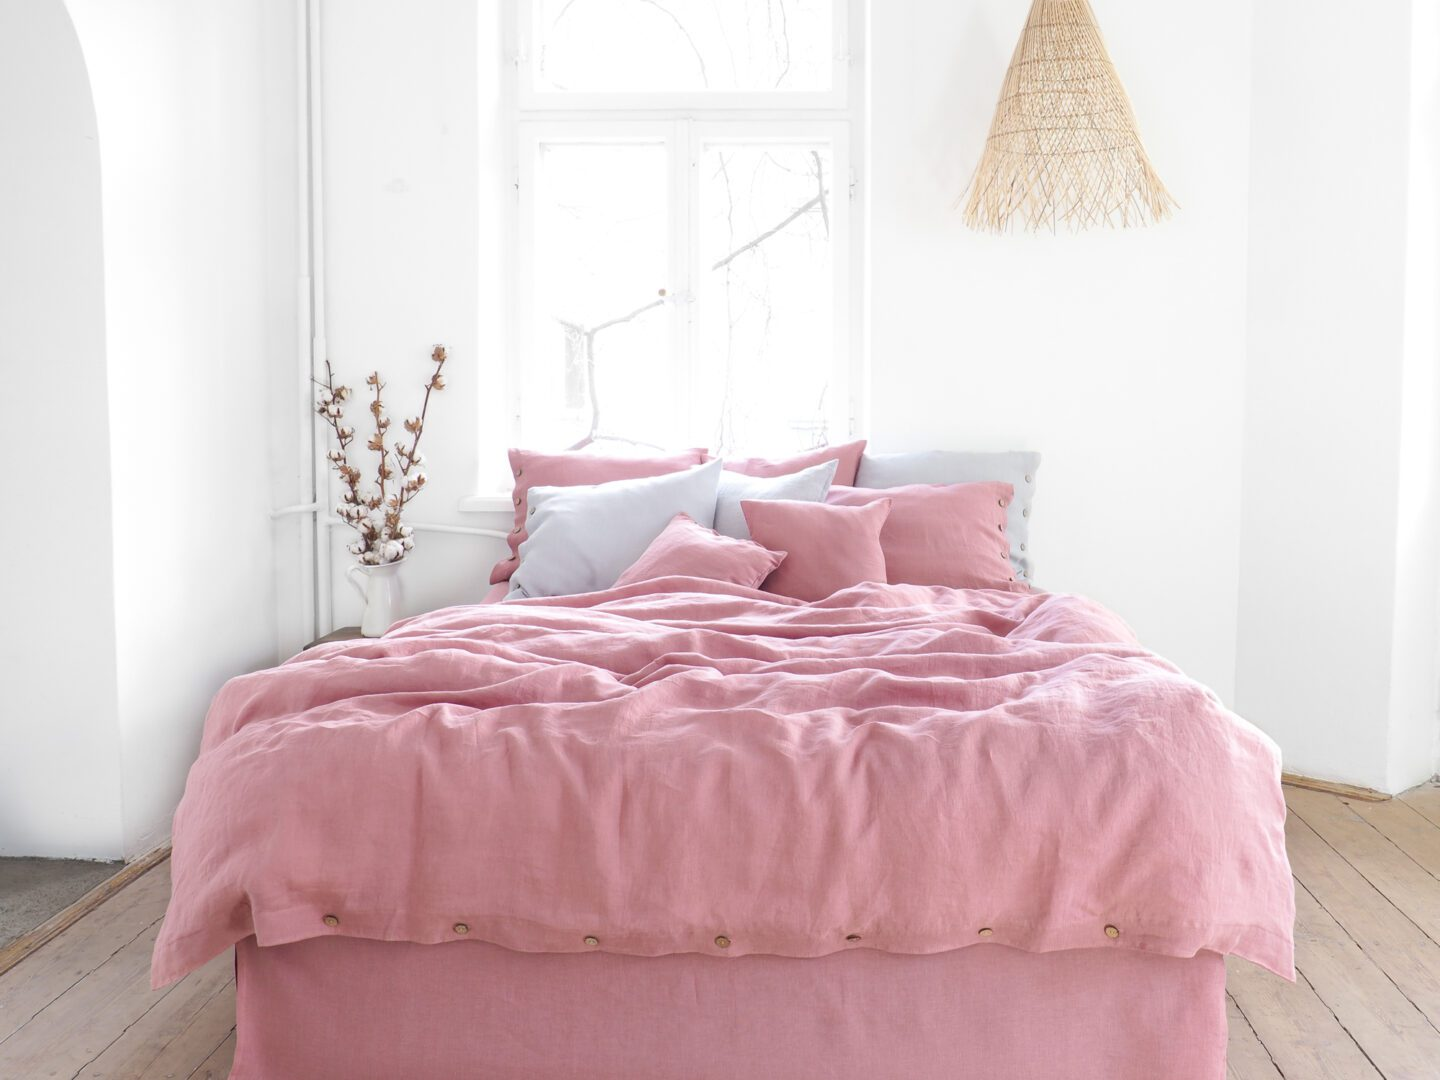 Dusty Pink Linen Bedding 100 European Stonewashed Linen